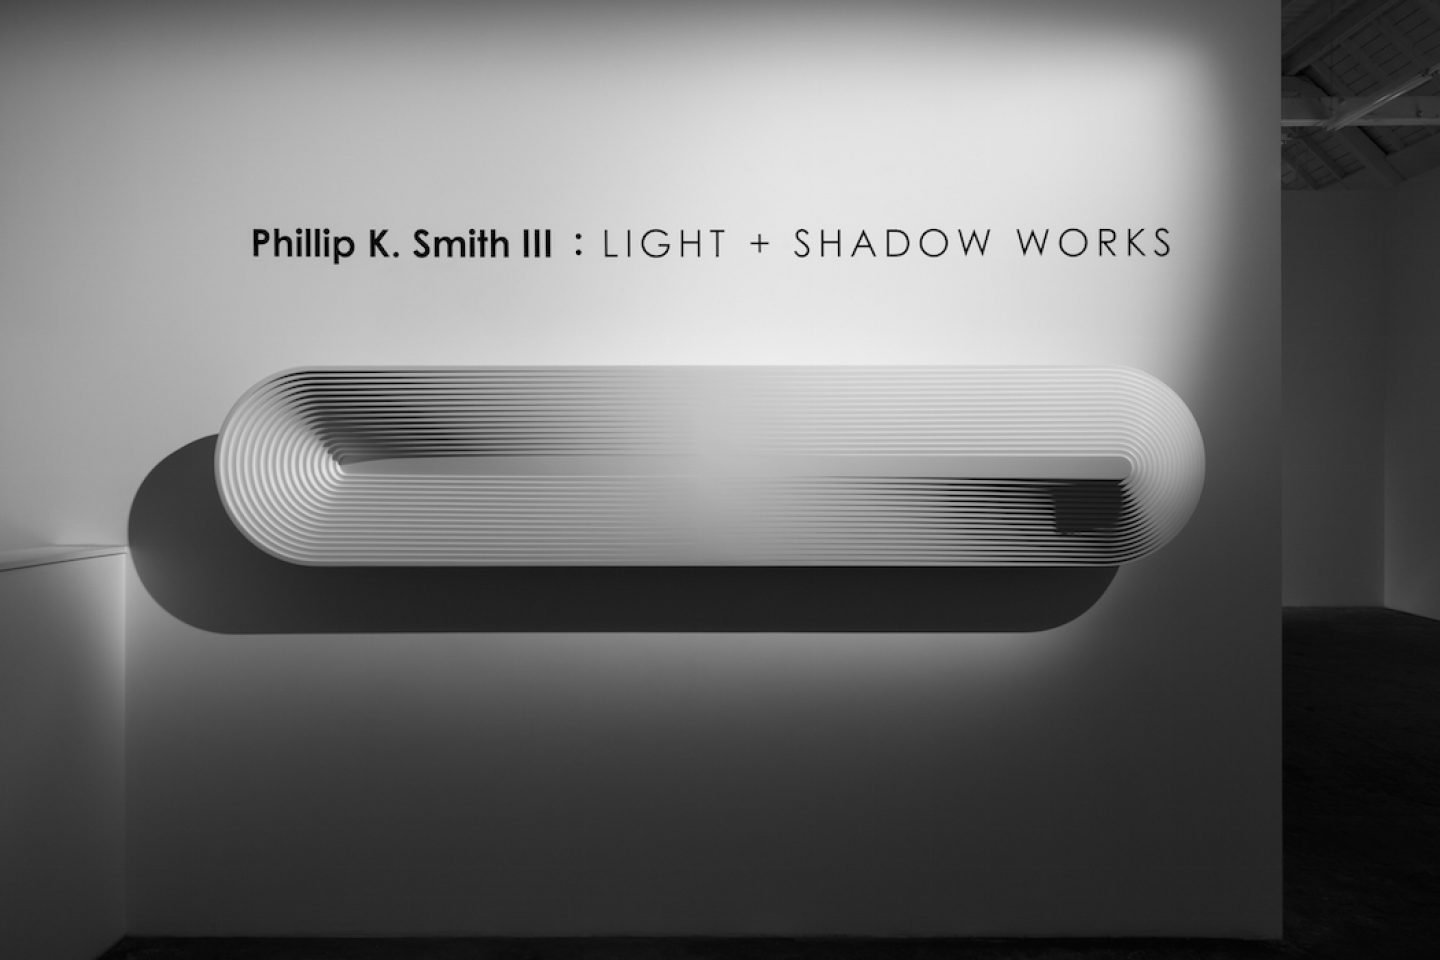 phillipksmith_art_002